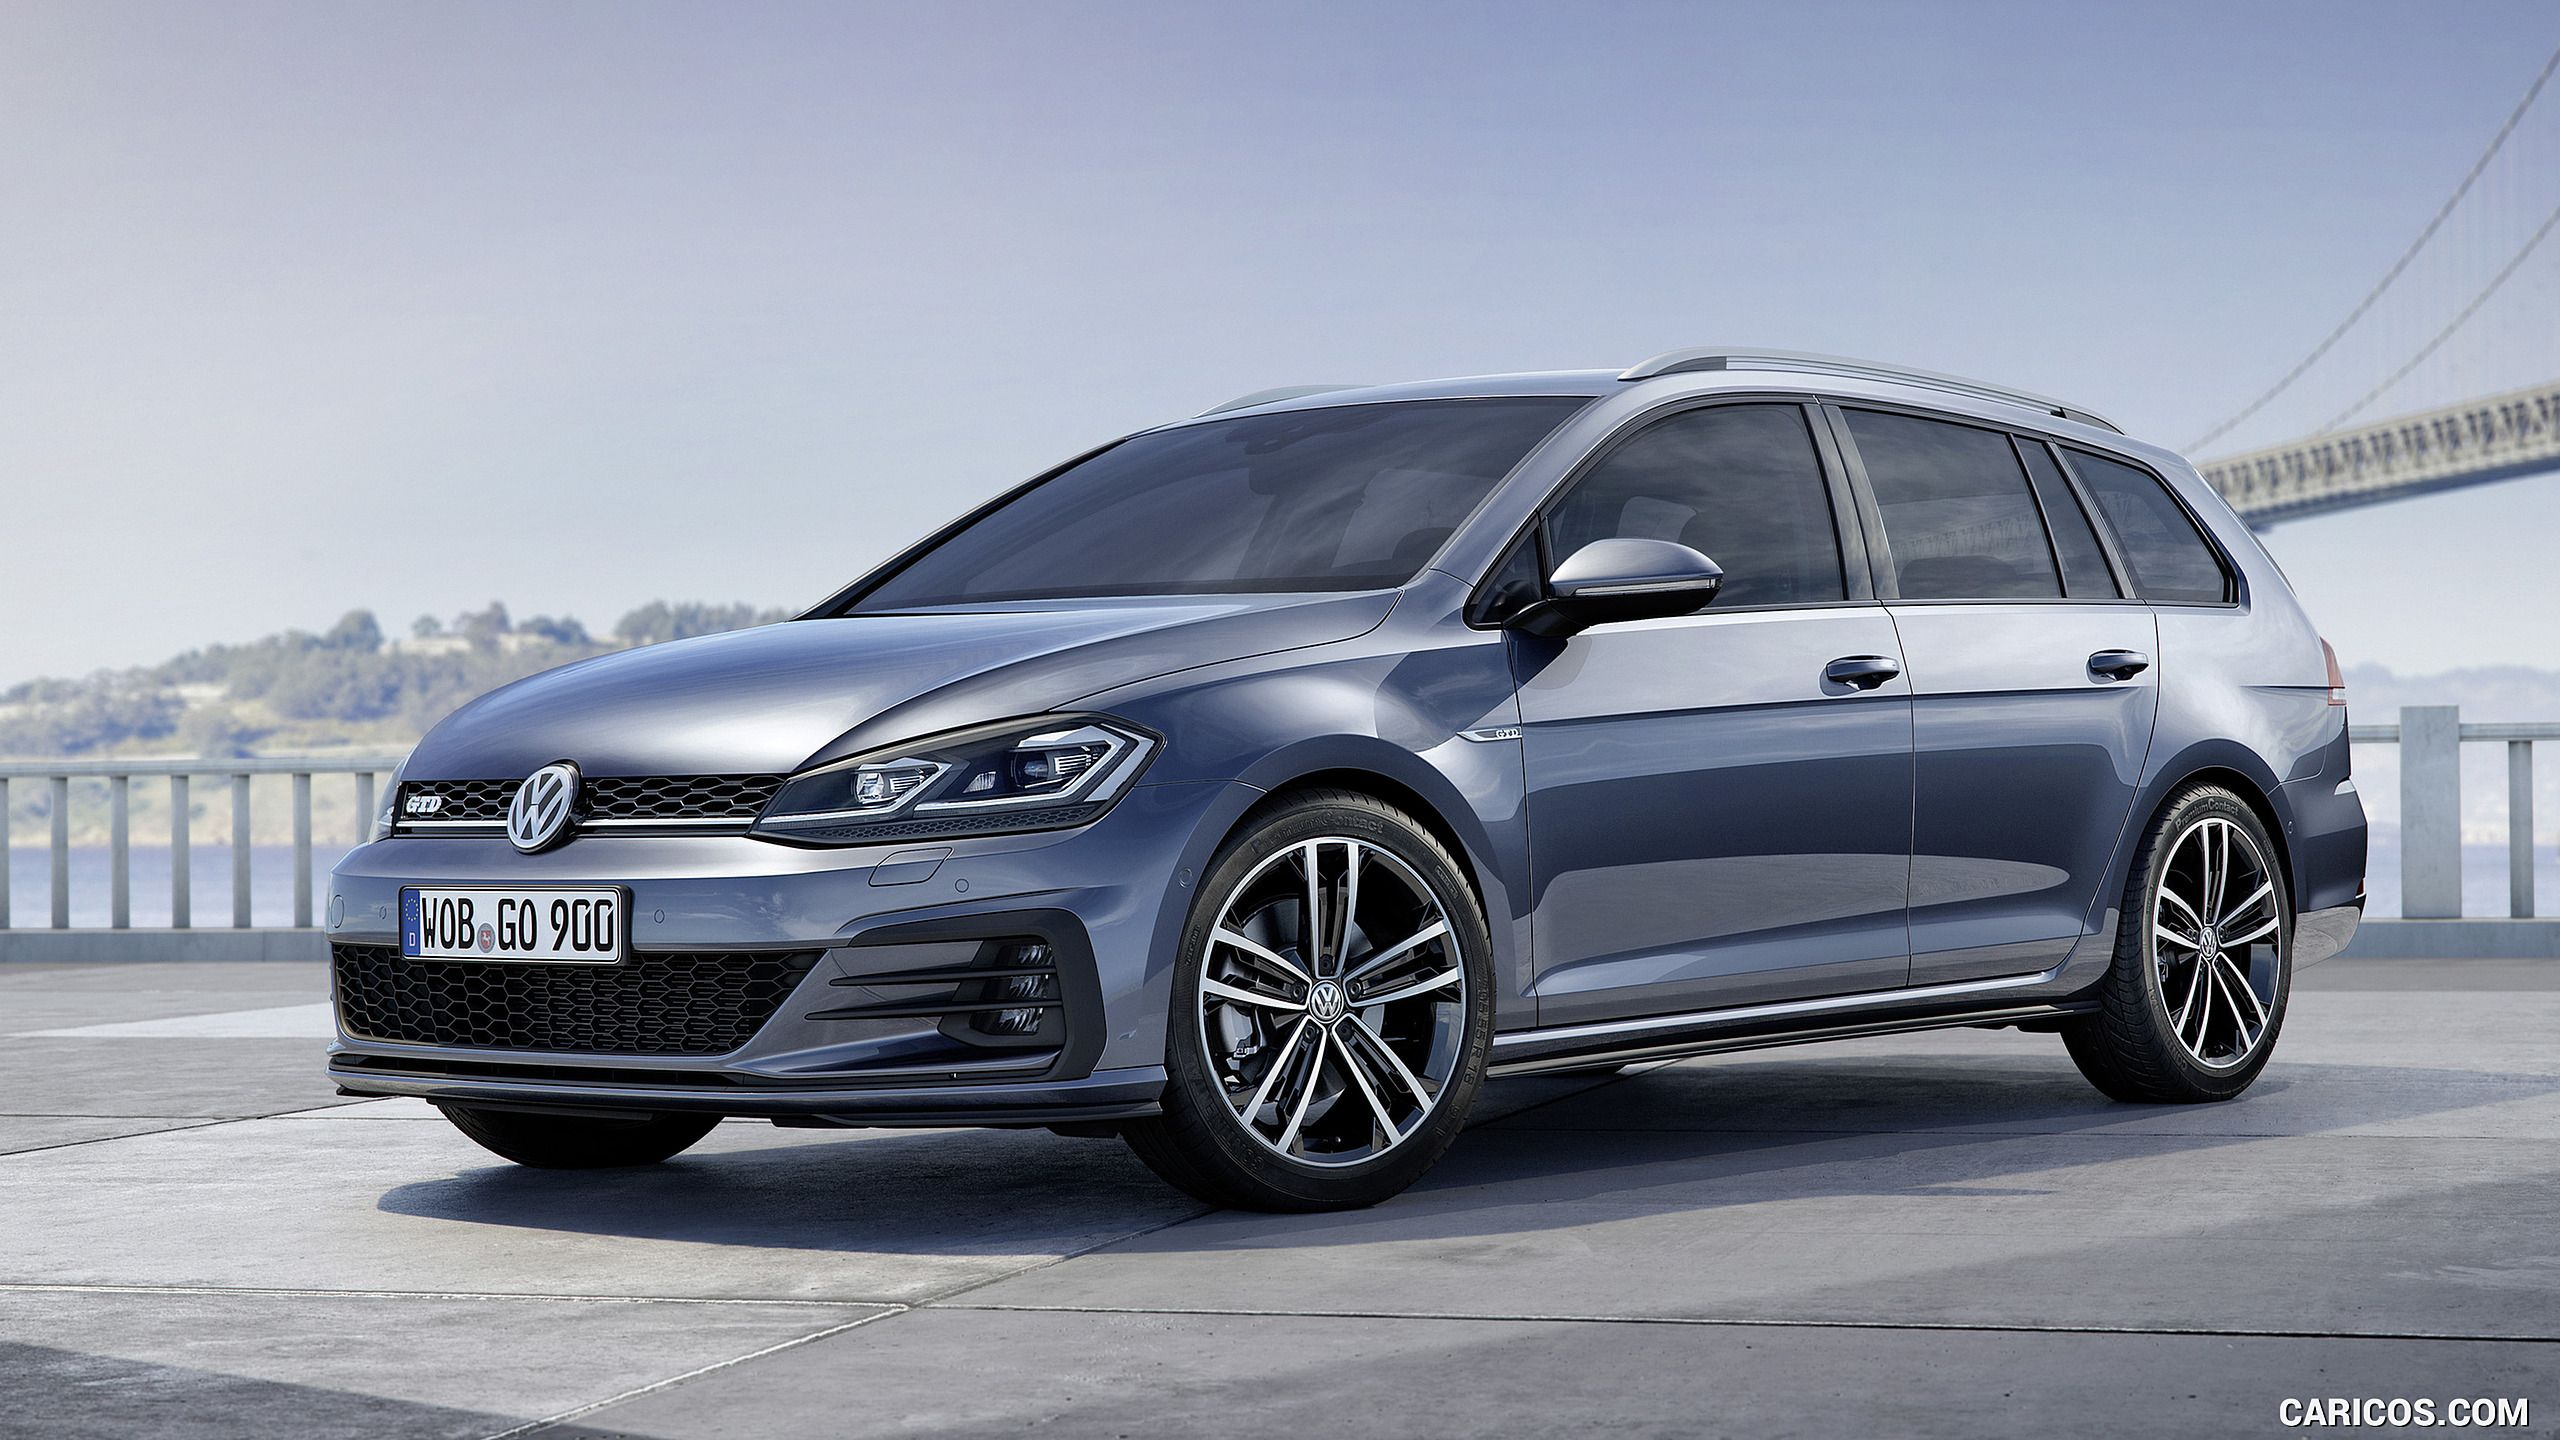 2017 volkswagen golf 7 facelift wallpaper different cars pinterest volkswagen golf. Black Bedroom Furniture Sets. Home Design Ideas